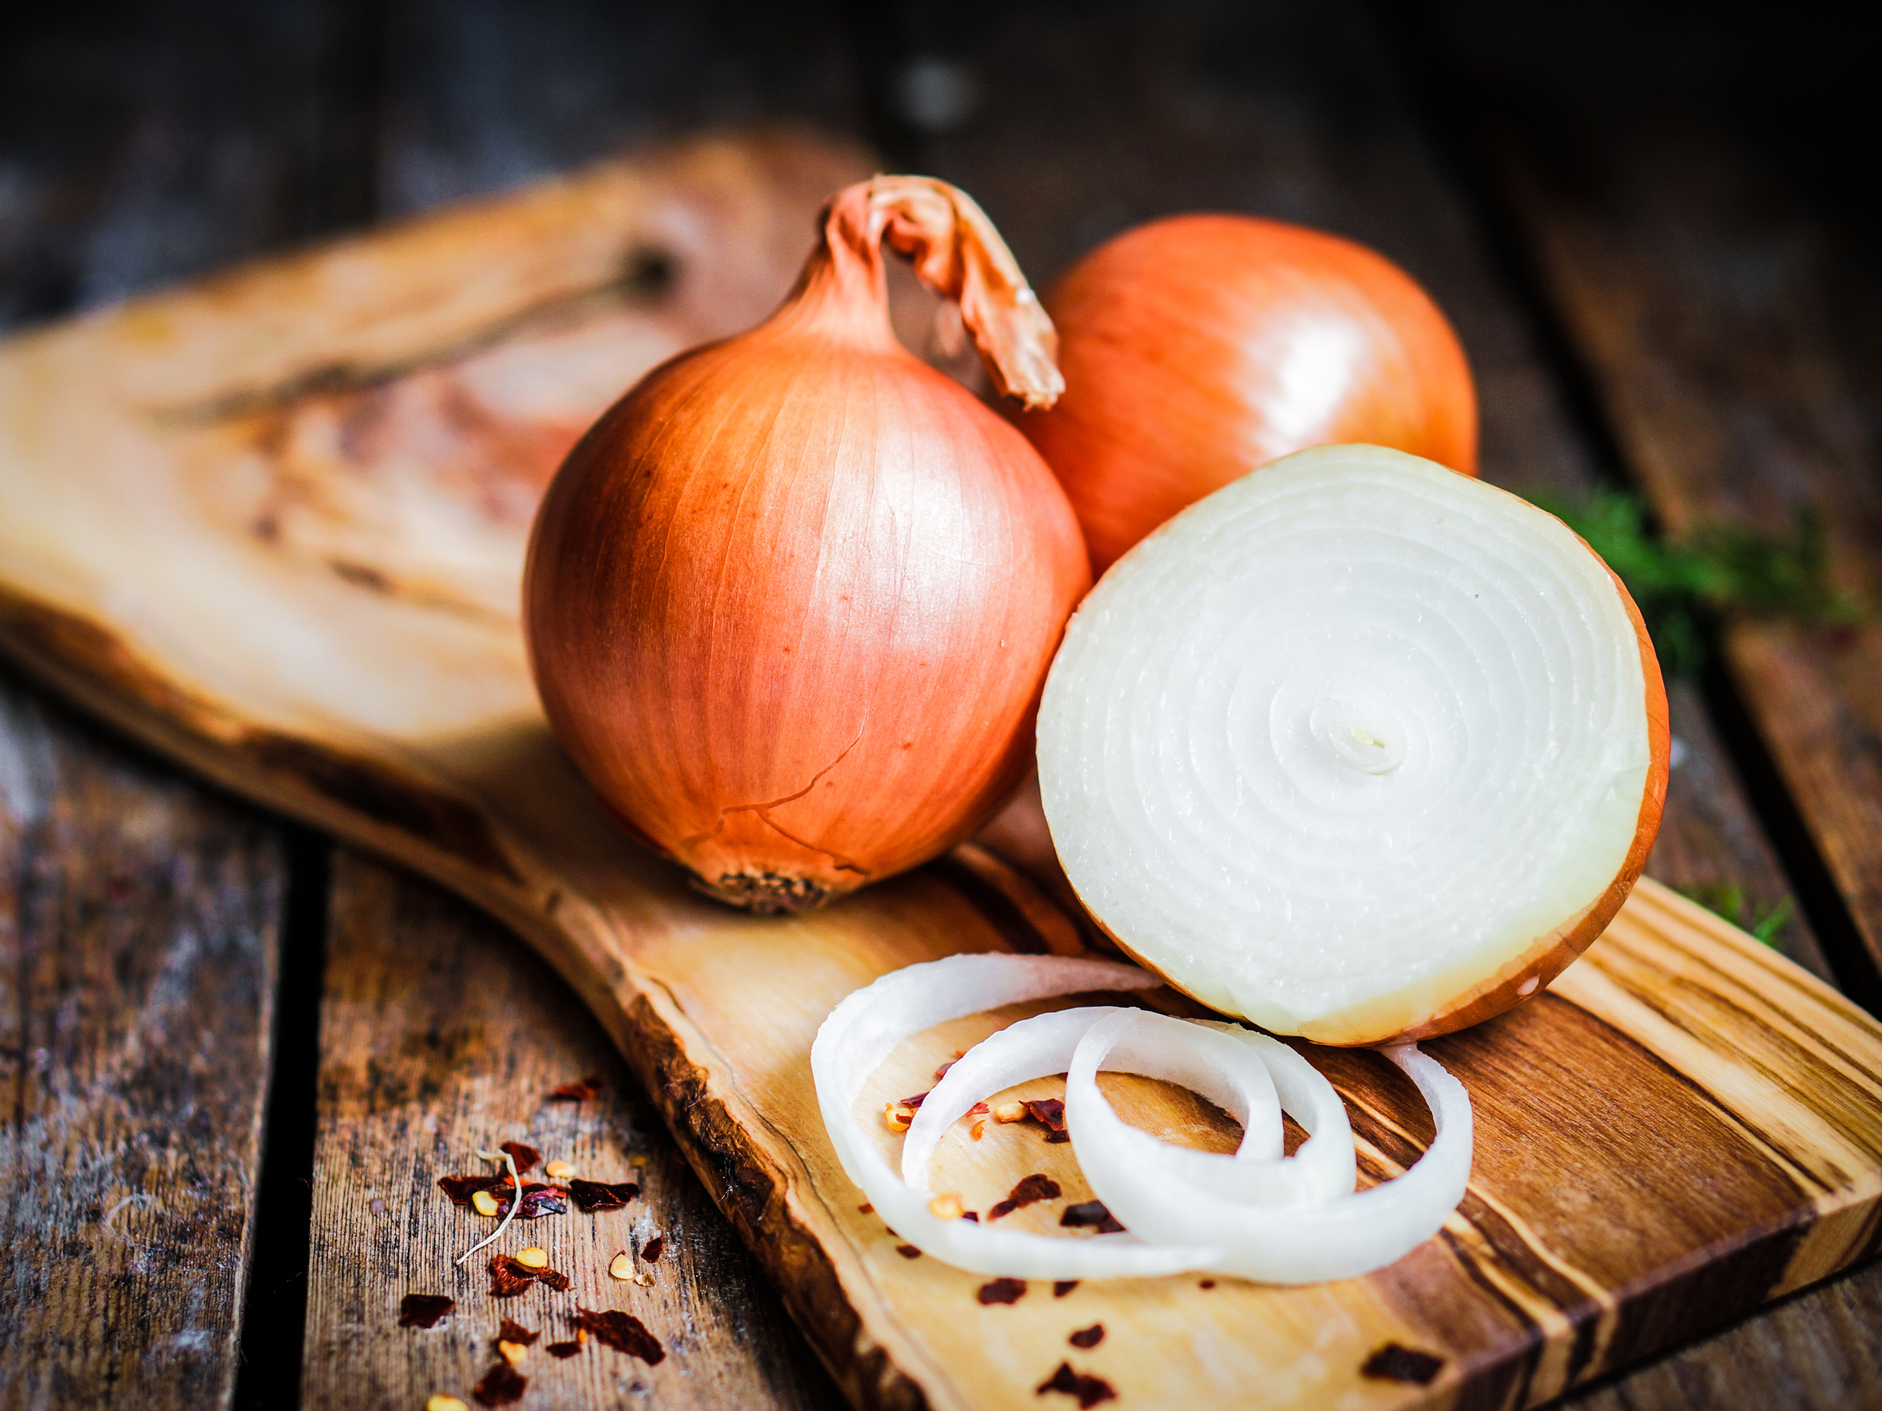 Tearless Onions Test